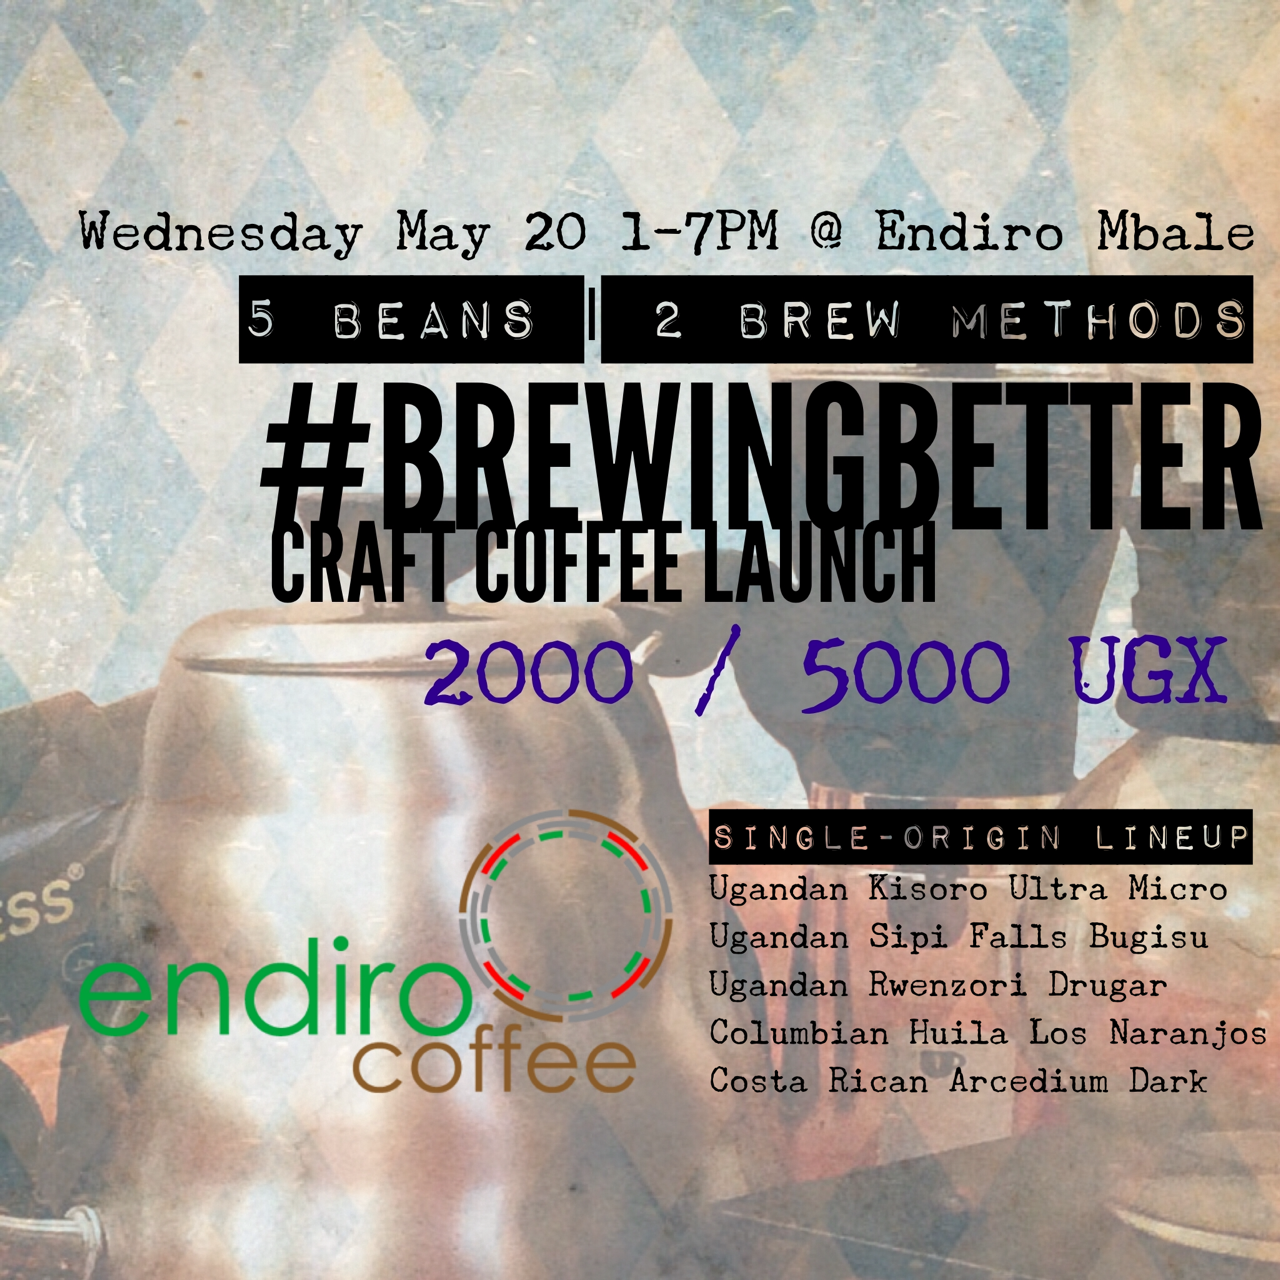 """ANNOUNCING: #Brewingbetter Launch Party 🎊🎊 Wednesday, May 20, 2015 @ Endiro Coffee [Mbale 